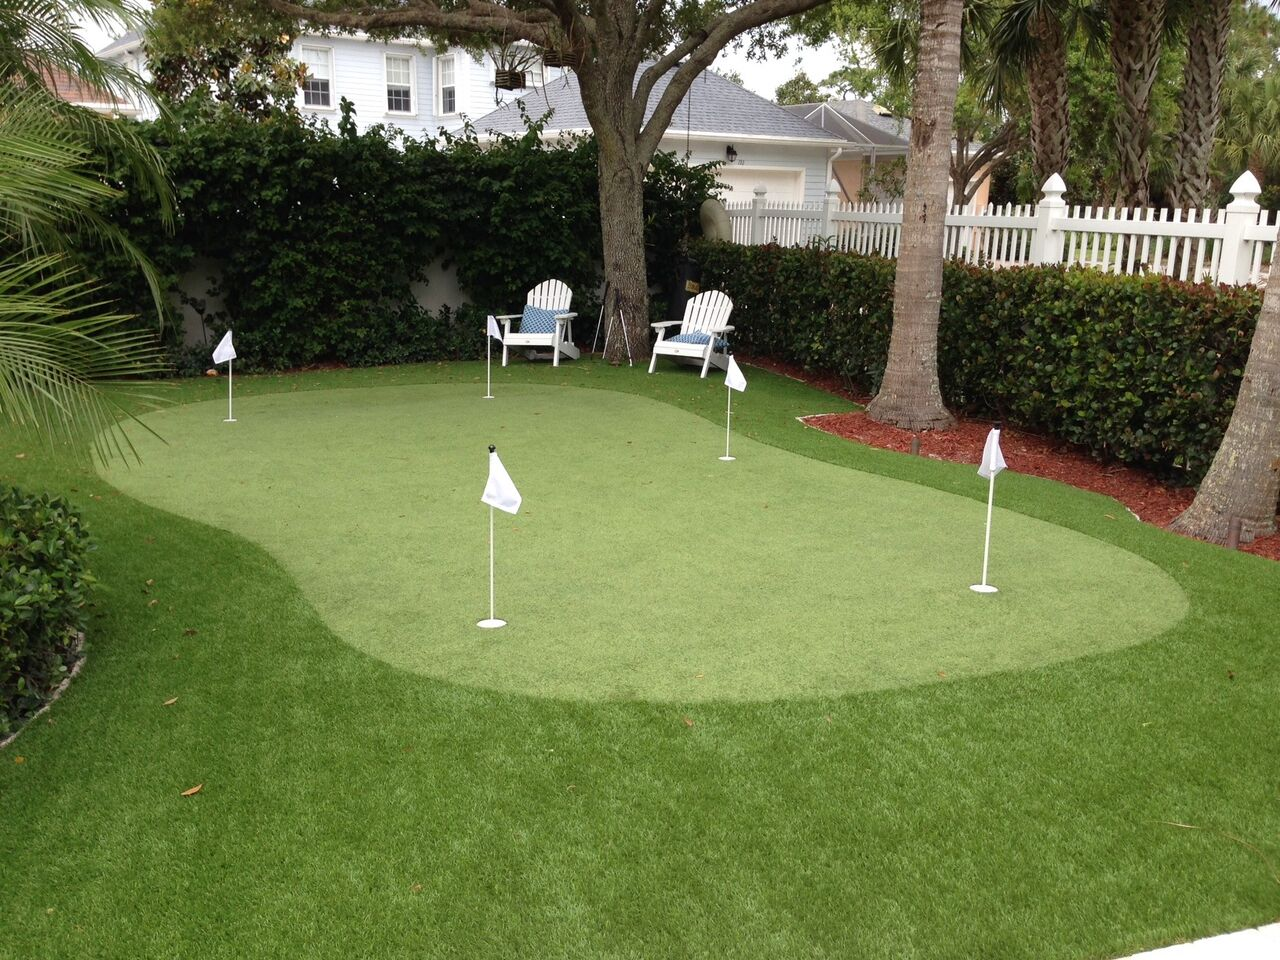 where can i get new artificial turf in west palm beach